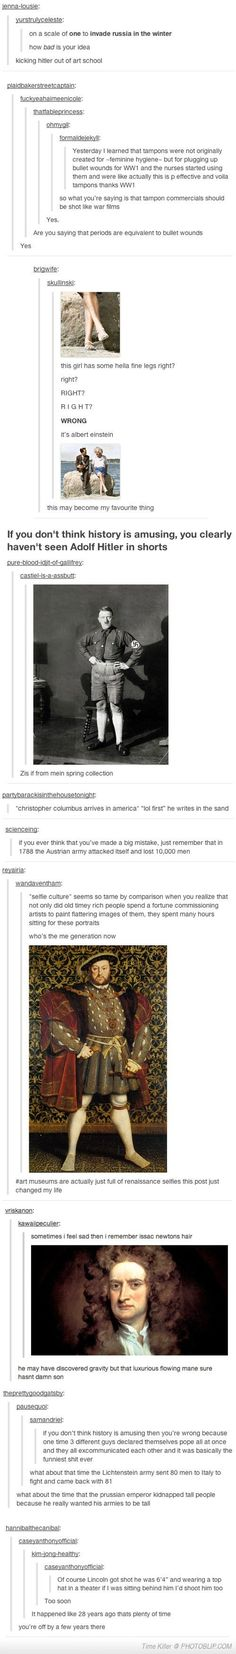 History is hilarious. Some of these (with some checking and editing) could be good in the classroom.